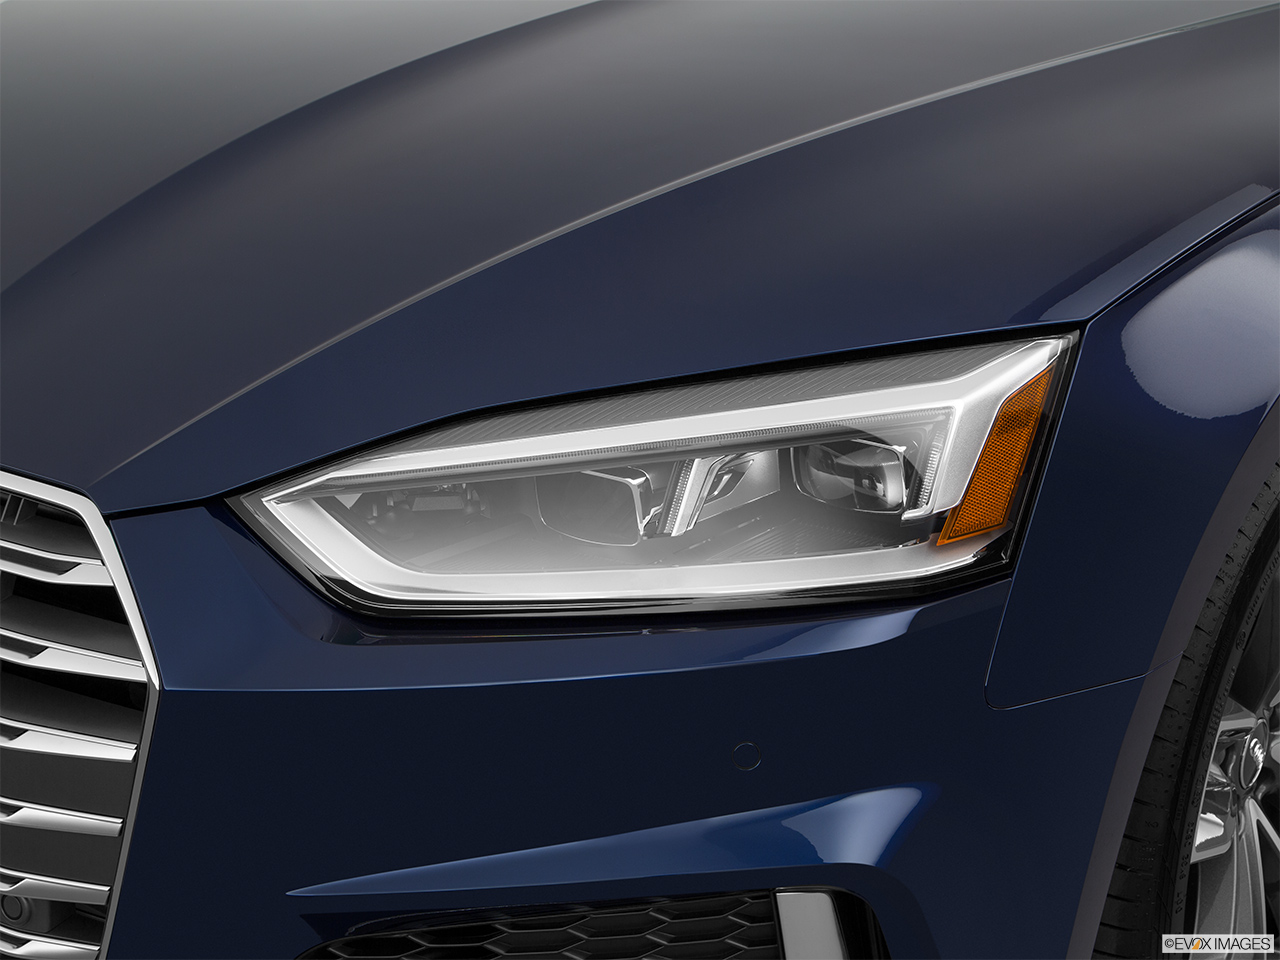 2019 Audi S5 Sportback Premium Plus 3.0 TFSI Drivers Side Headlight.